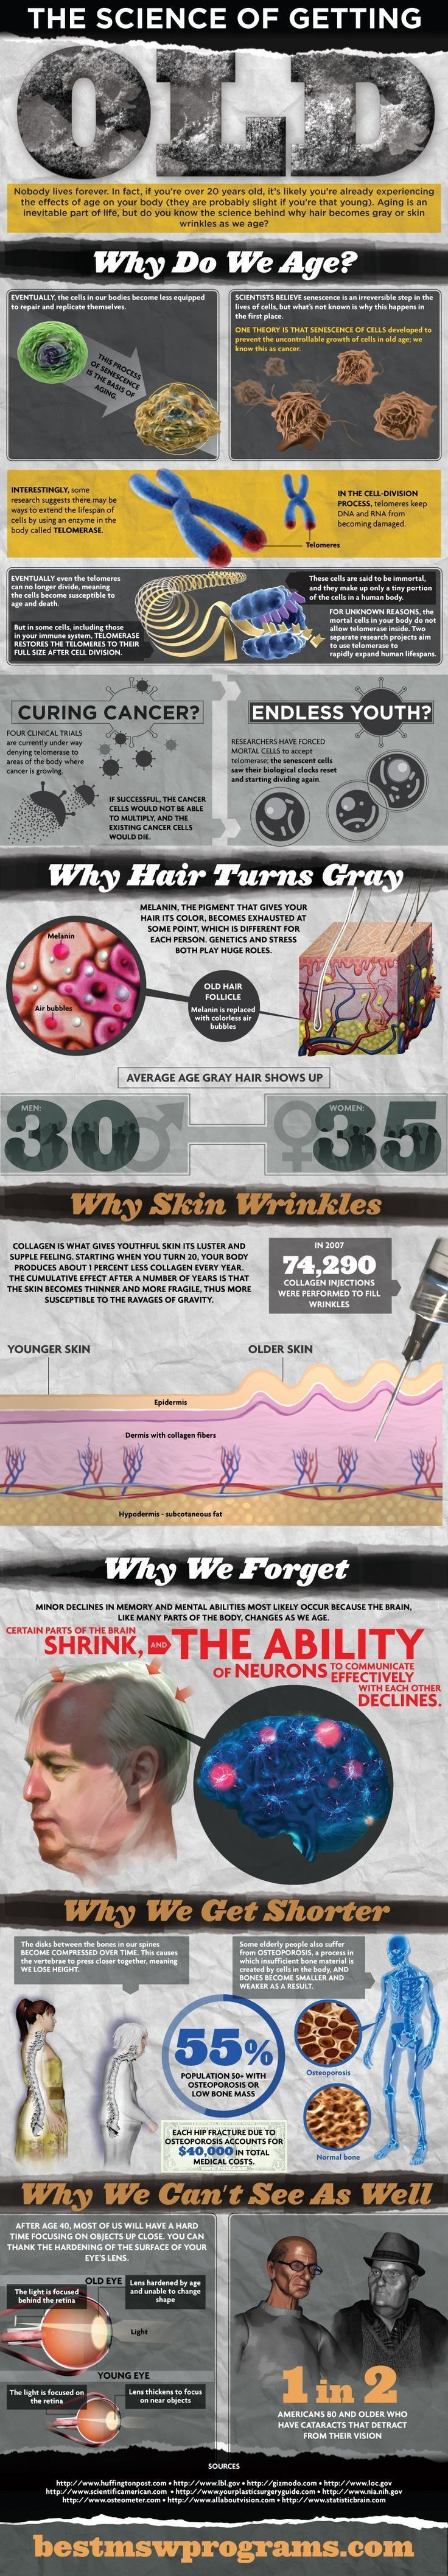 Its a fact: Nobody lives forever. Aging is unavoidable. But what actually happens when you age? Why does your hair go grey? Why does your skin